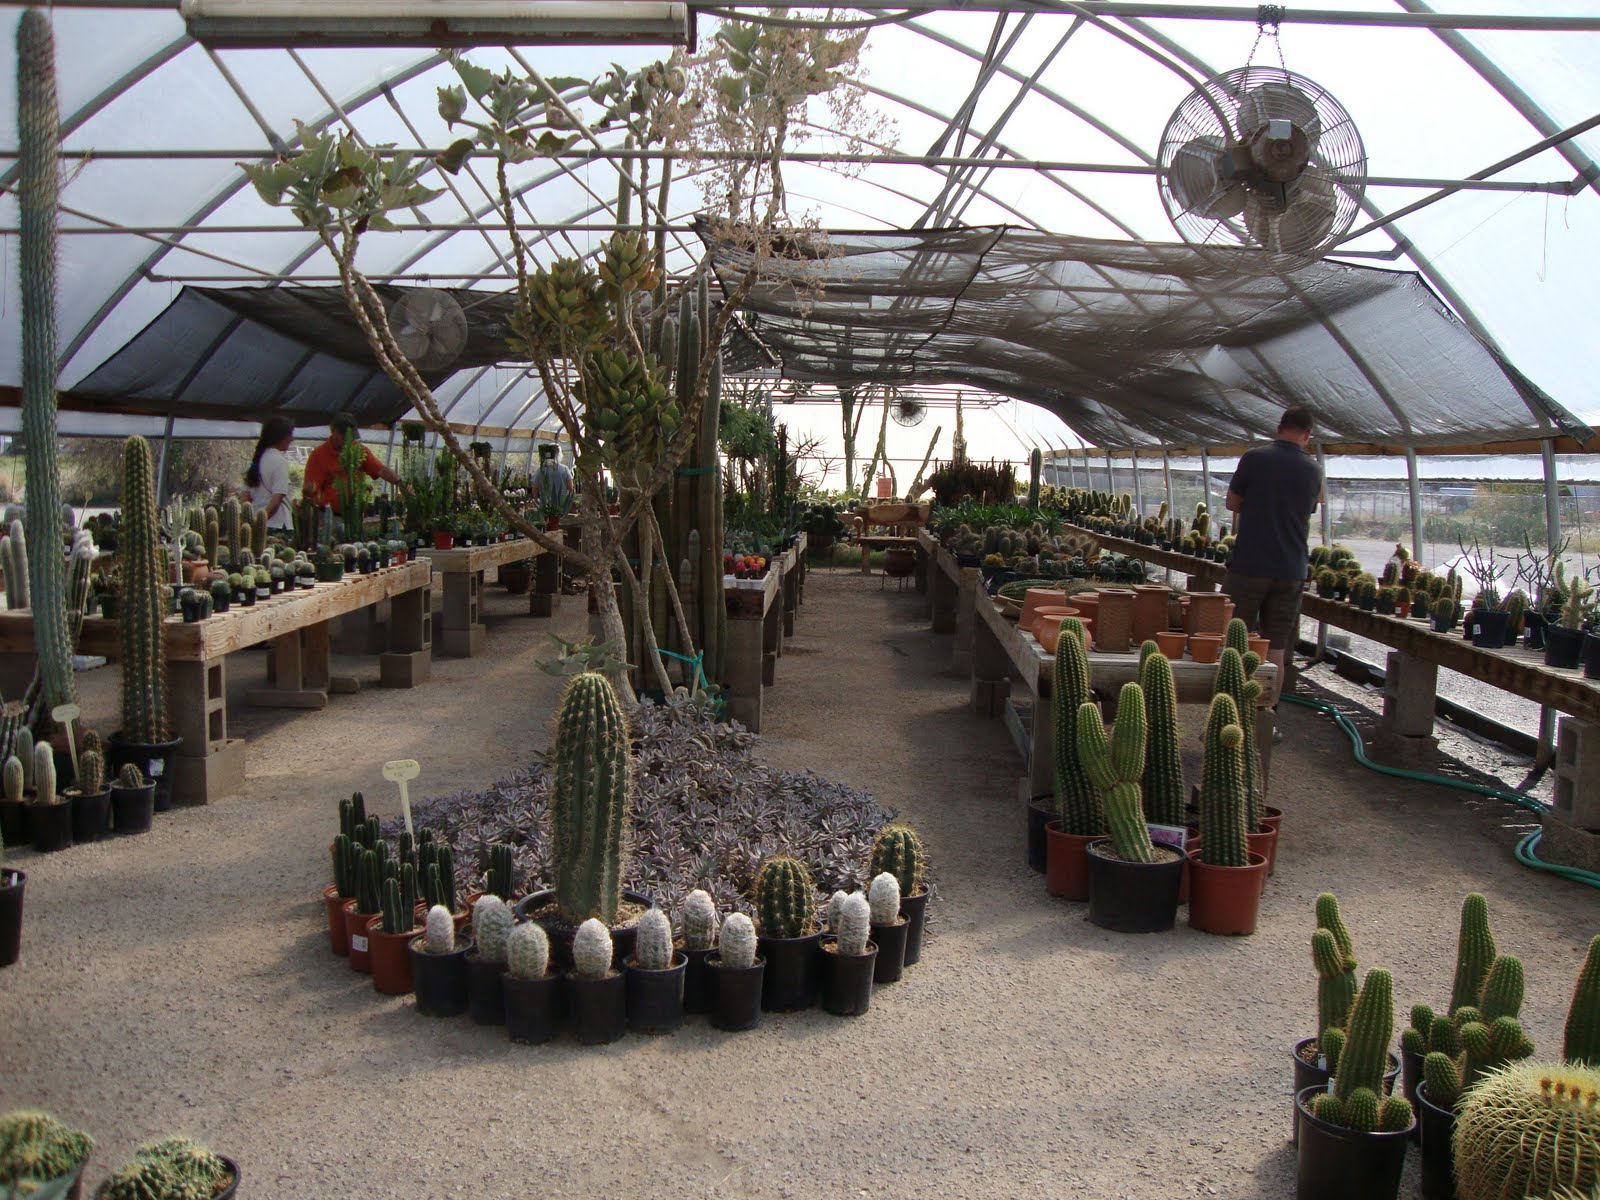 Last Time We Visited T Or C The Nursery Was Closed But Still Poked Around Looked At Plants Outside And Ked In Greenhouse